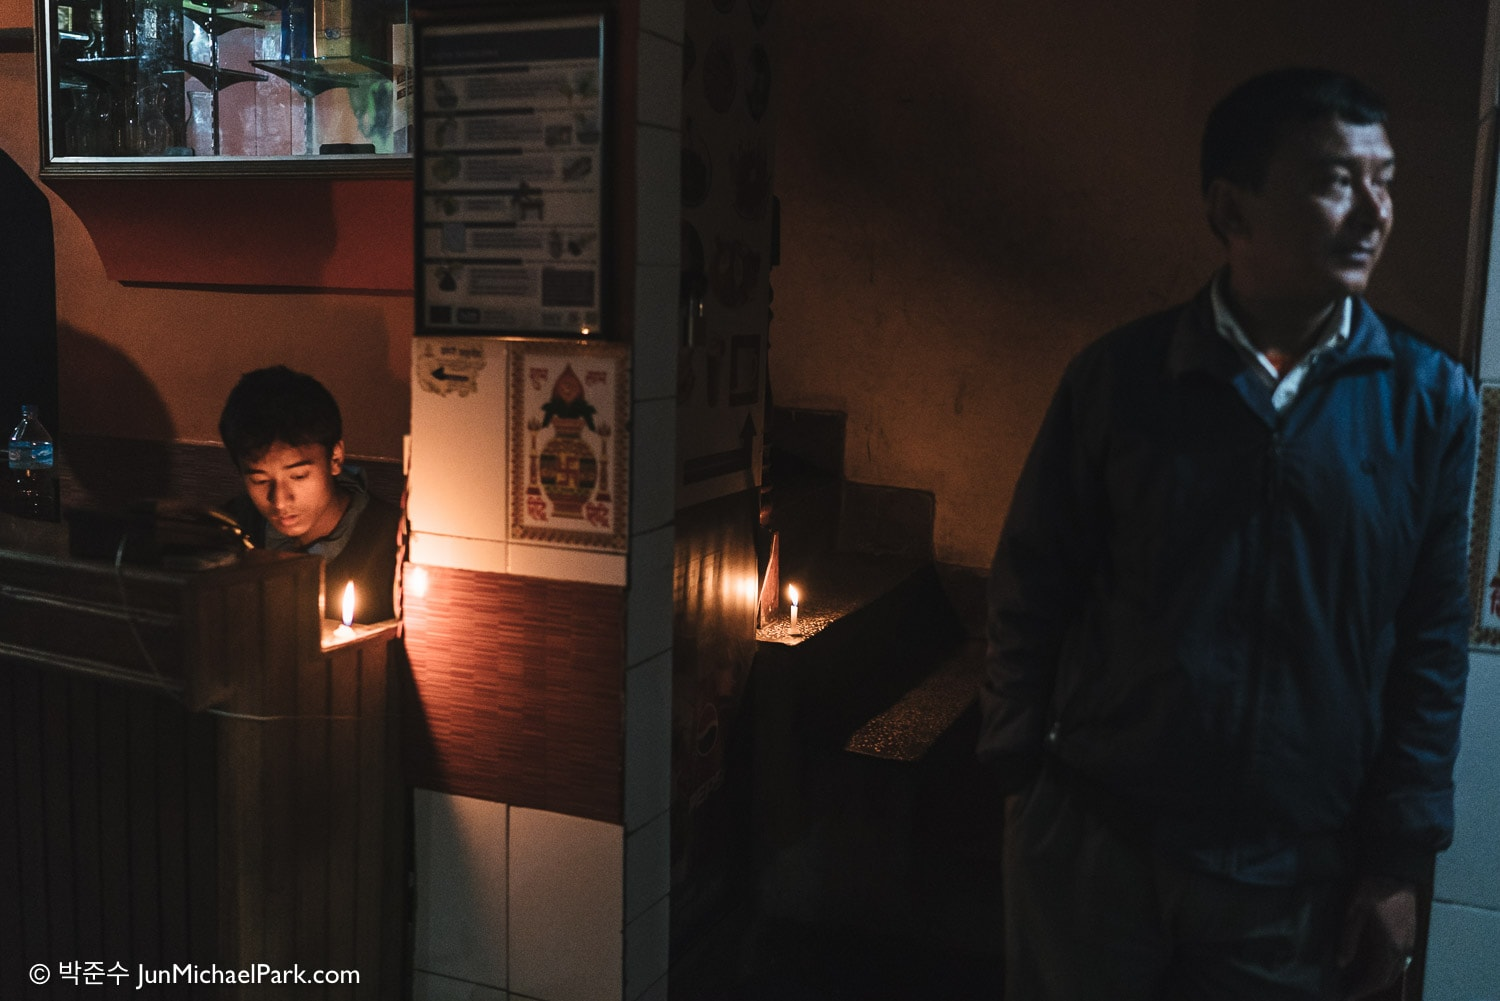 Candles are lit in a restaurant at Thamel district, Kathmandu, Nepal. Power outages are frequent due to the fuel shortage, and solar generators barely power dim fluorescent lights. 02.11.15